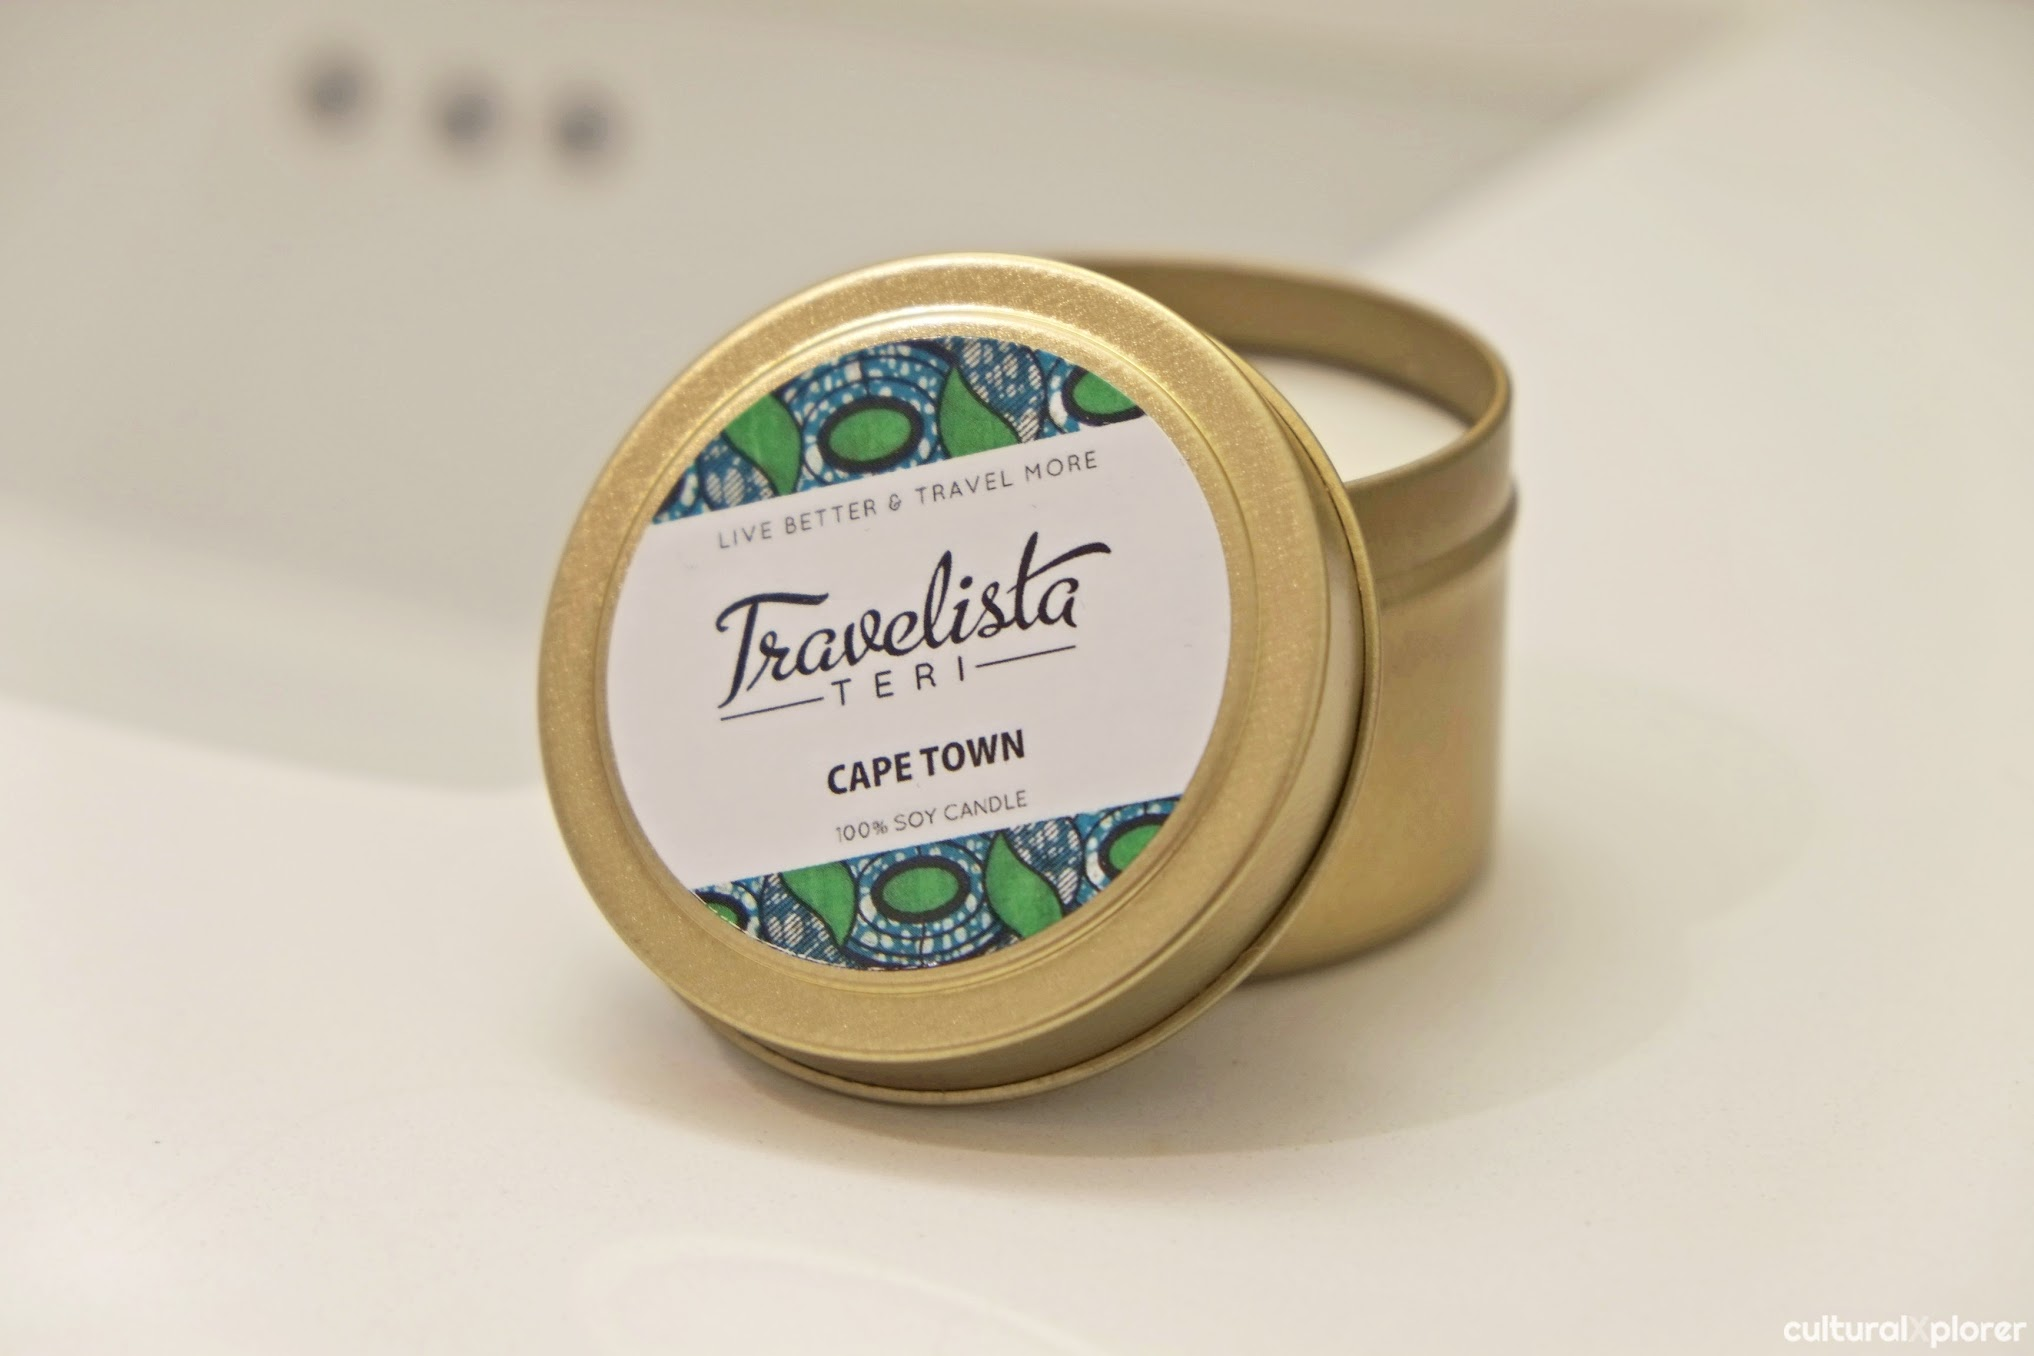 Travelista Teri Cape Town candle